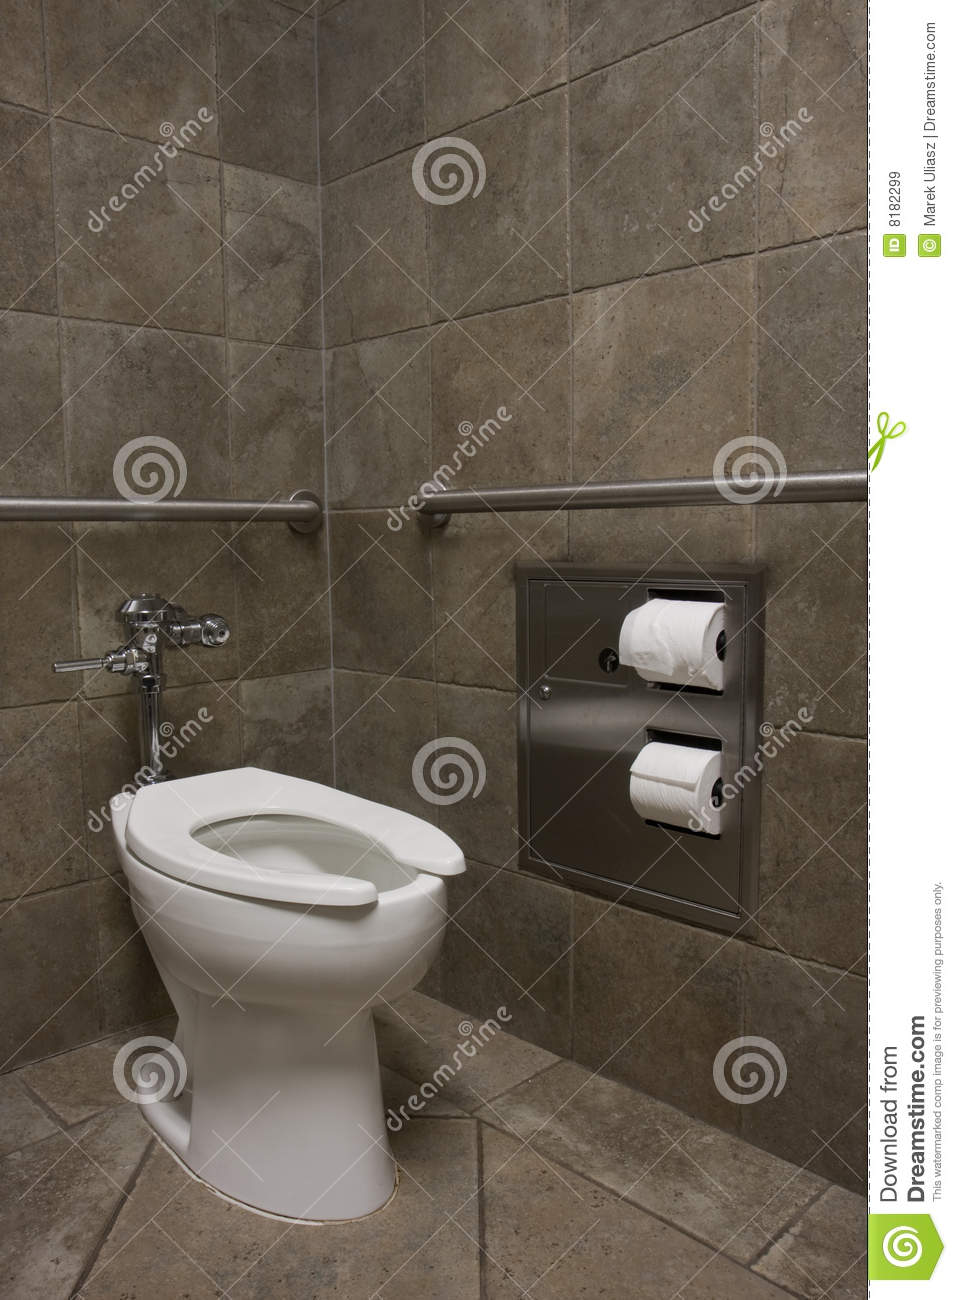 Clean White Toilet In A Public Restroom Royalty Free Stock